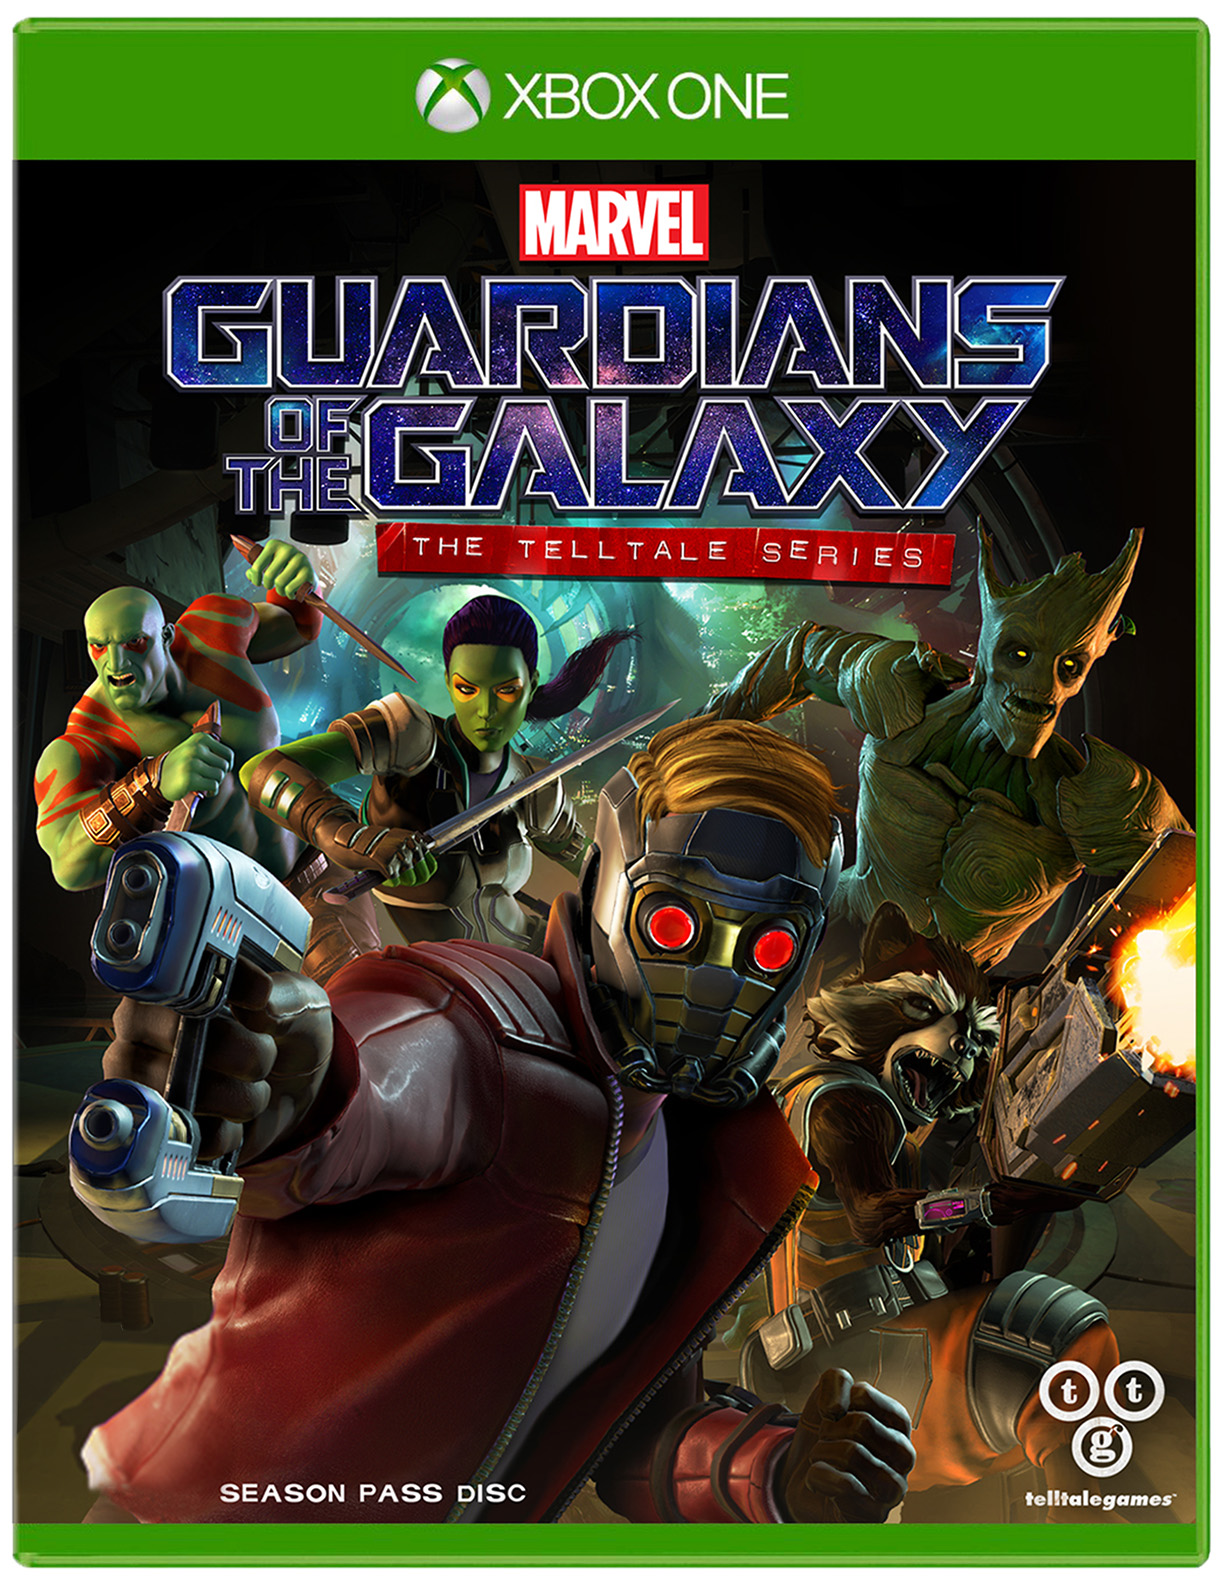 Buy Marvel's Guardians of the Galaxy: The Telltale Series for Xbox One -  Microsoft Store